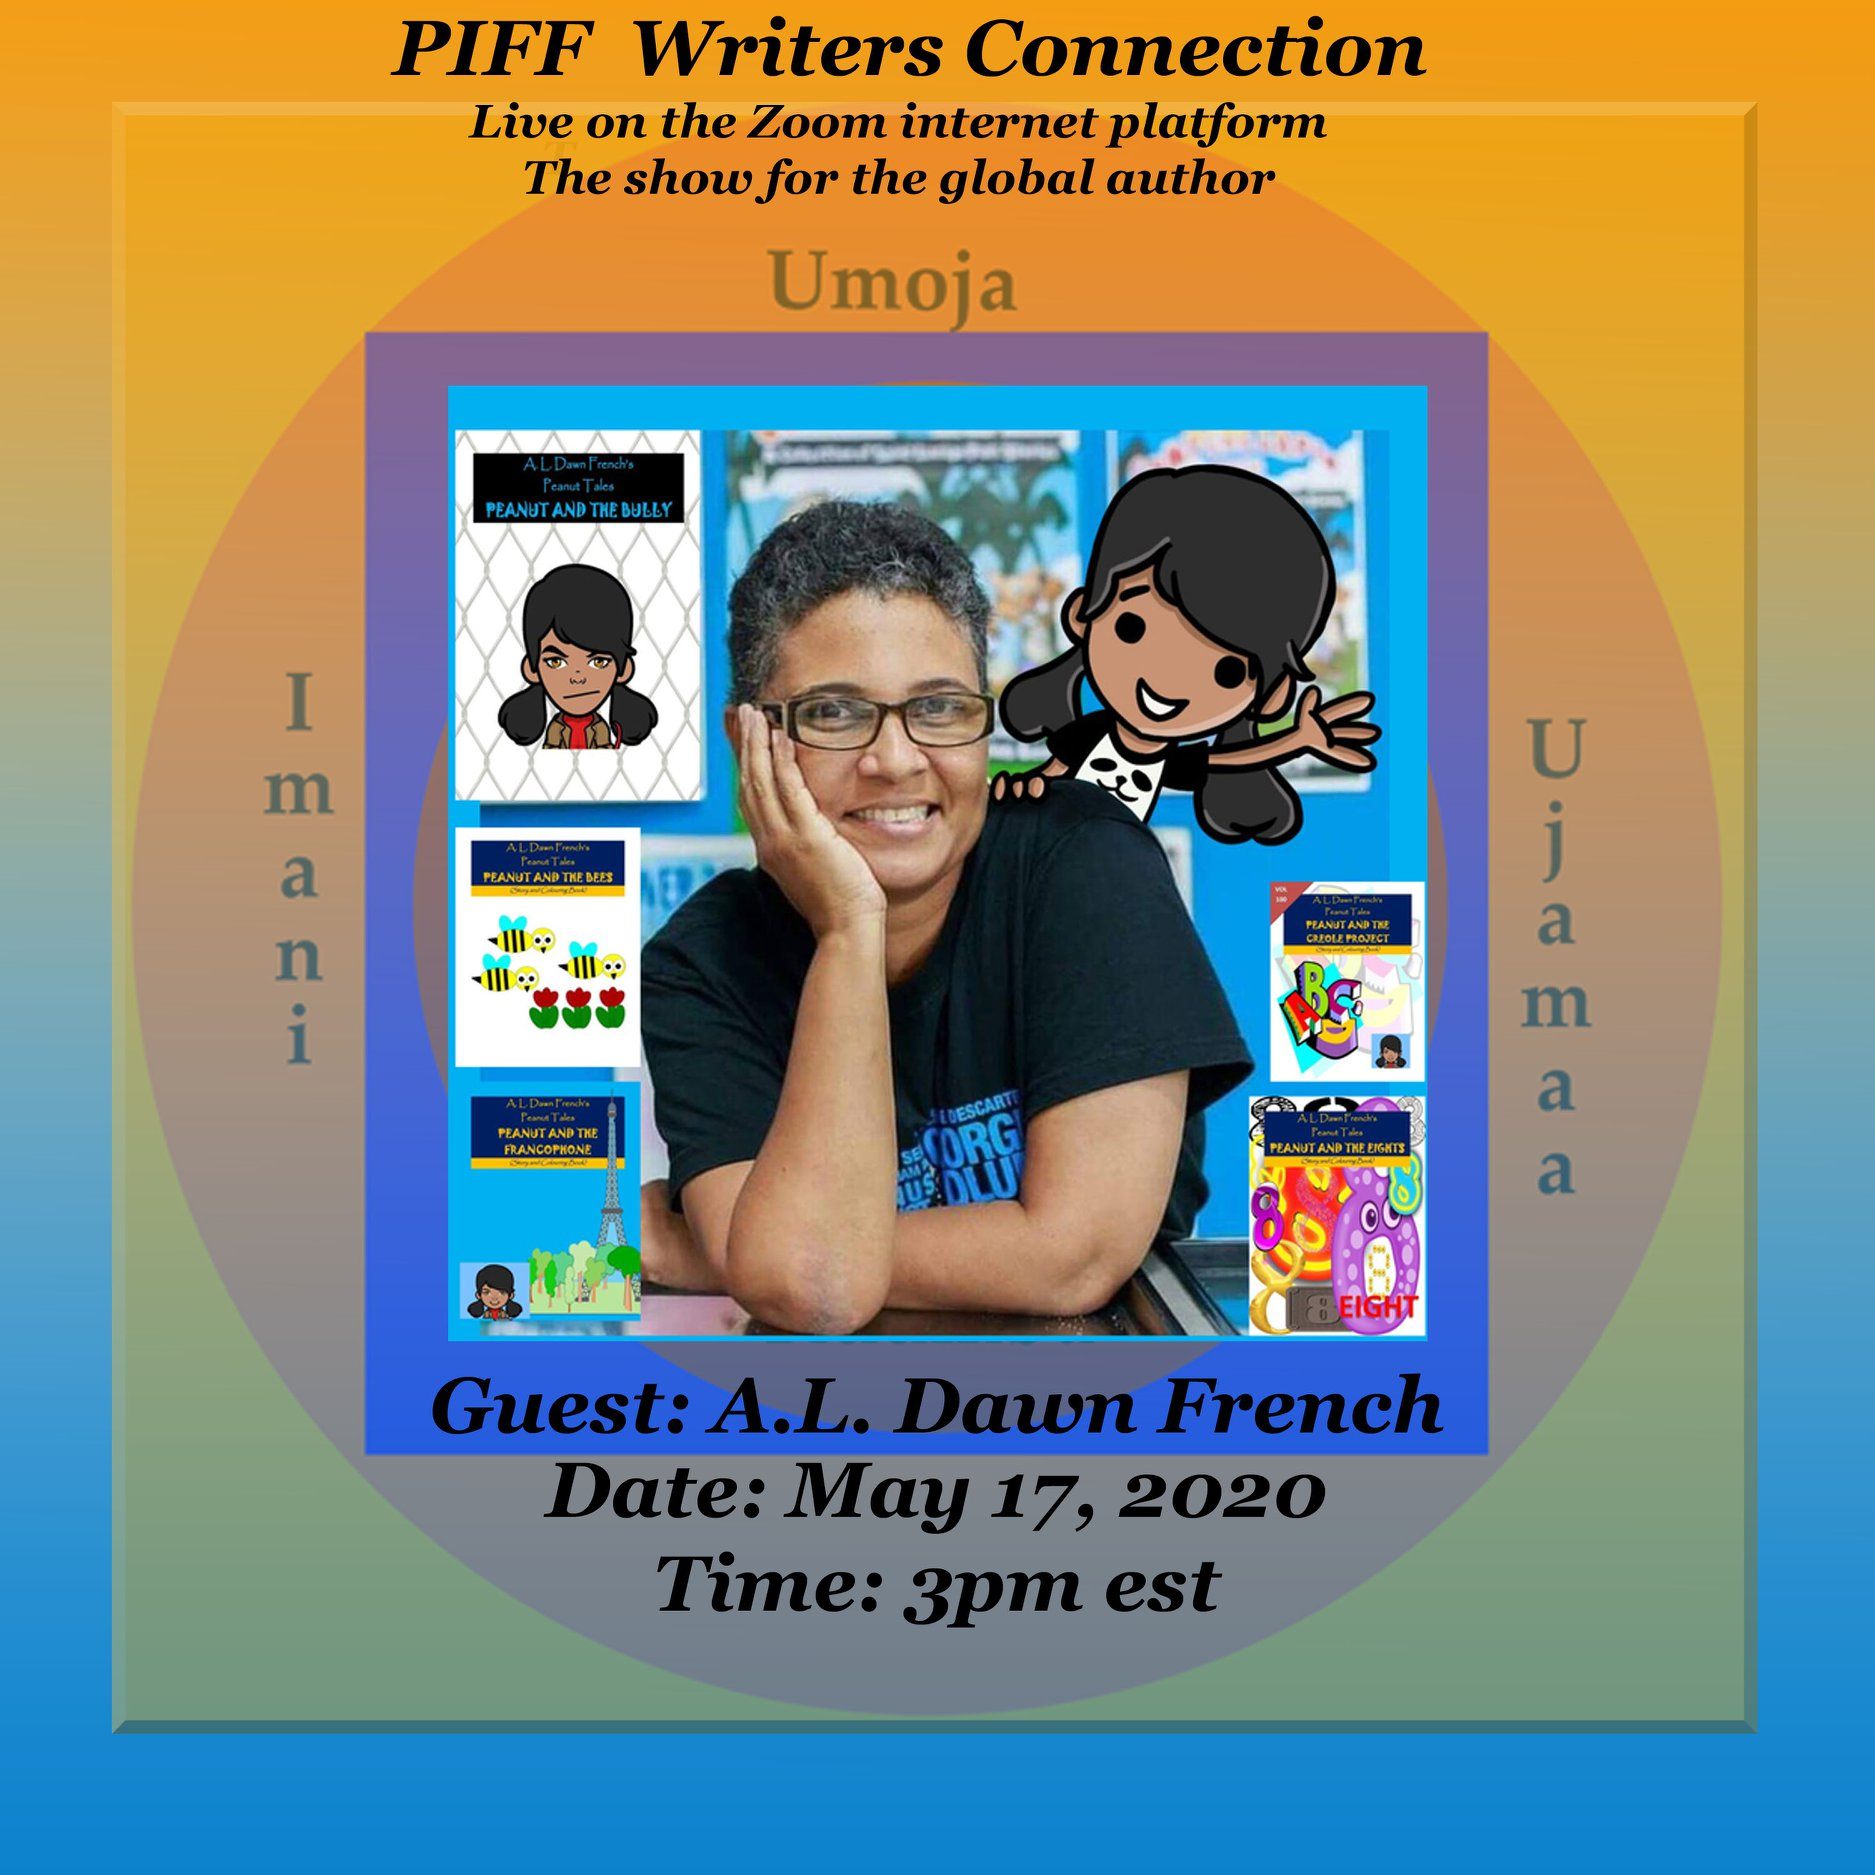 PIFF Writers Connection interviews Lucian Author Dawn French